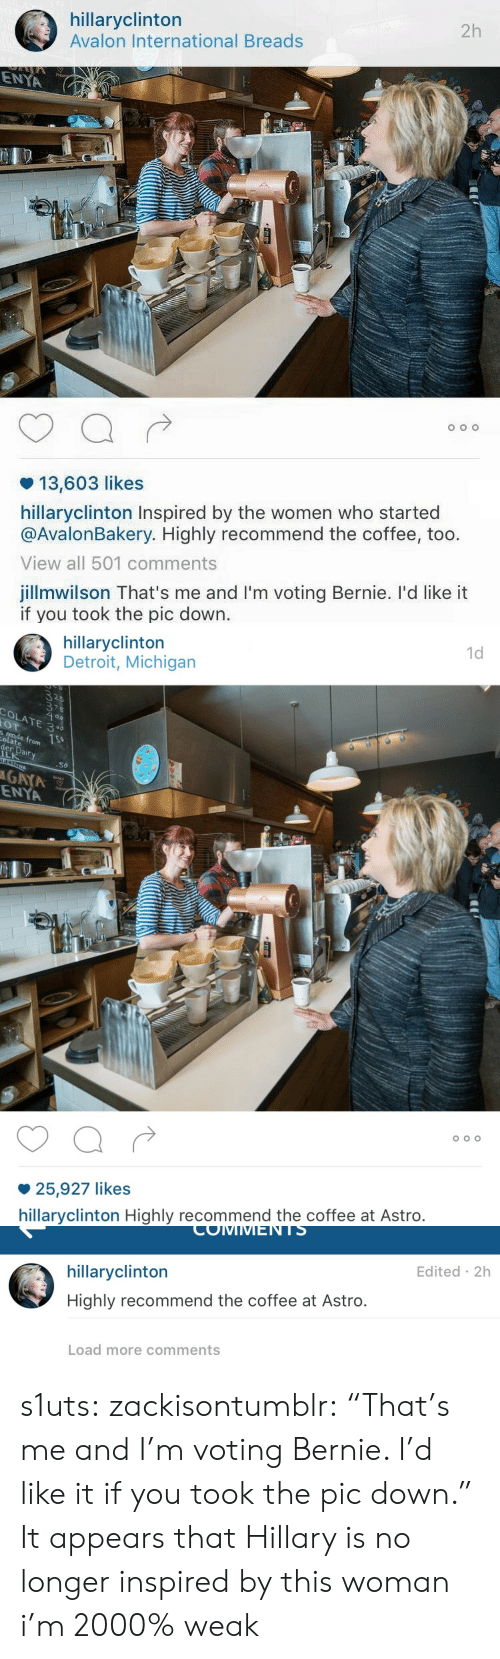 "Detroit, Target, and Tumblr: hillaryclinton  Avalon International Breads  2h  ENYA  13,603 likes  hillaryclinton Inspired by the women who started  @AvalonBakery. Highly recommend the coffee, too.  View all 501 comments  jillmwilson That's me and I'm voting Bernie. I'd like it  if you took the pic down.   1d  hillaryclinton  Detroit, Michigan  375  olate rom  er  .50  GAYA  ENYA  25,927 likes  hillaryclinton Highly recommend the coffee at Astro.   COIMMMENTS  hillaryclinton  Highly recommend the coffee at Astro.  Edited 2h  Load more comments s1uts:  zackisontumblr:  ""That's me and I'm voting Bernie. I'd like it if you took the pic down.""   It appears that Hillary is no longer inspired by this woman  i'm 2000% weak"